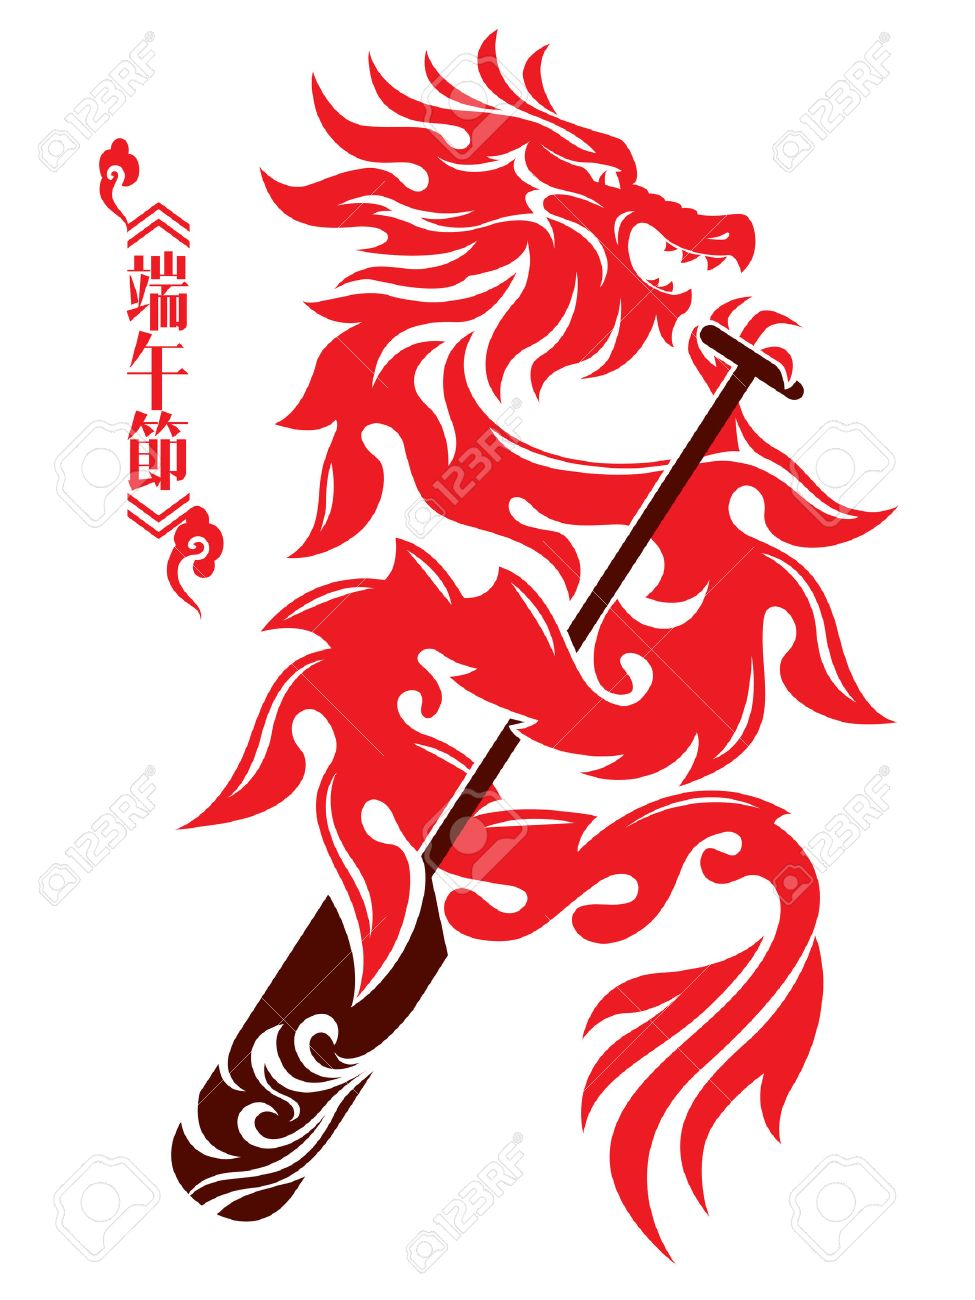 Dragon Rowing The Paddle Graphic Design In Two Color Chinese Mean